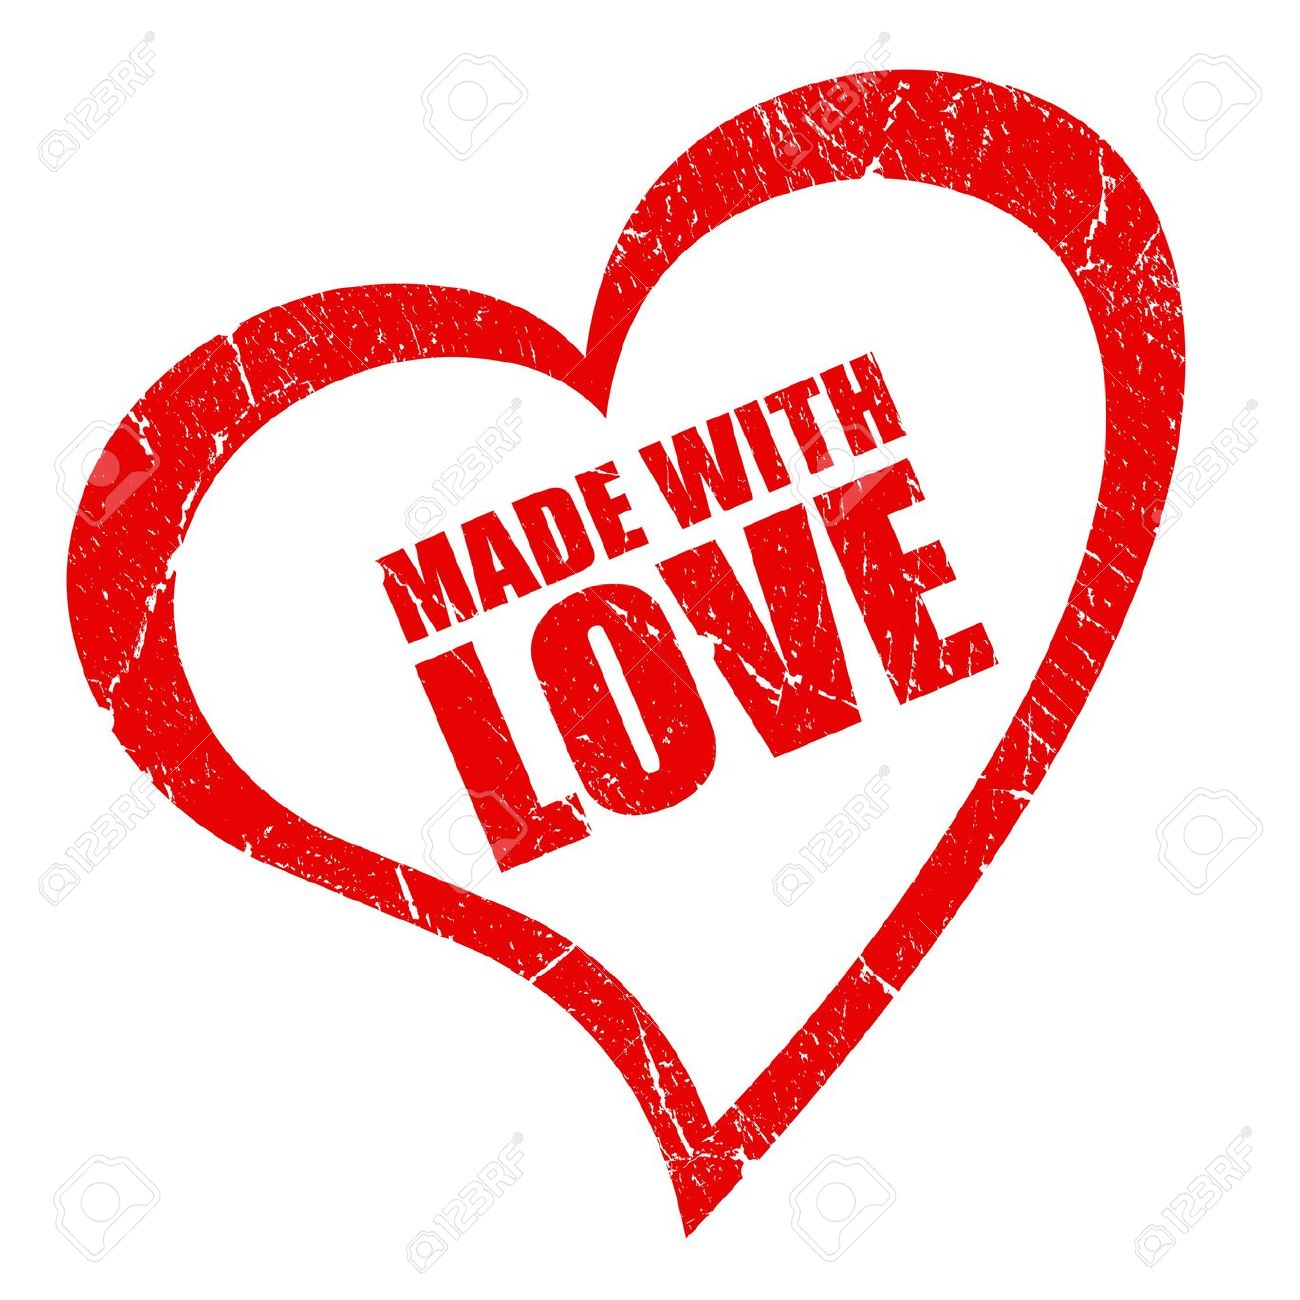 Made with love symbol Stock Photo - 10428473